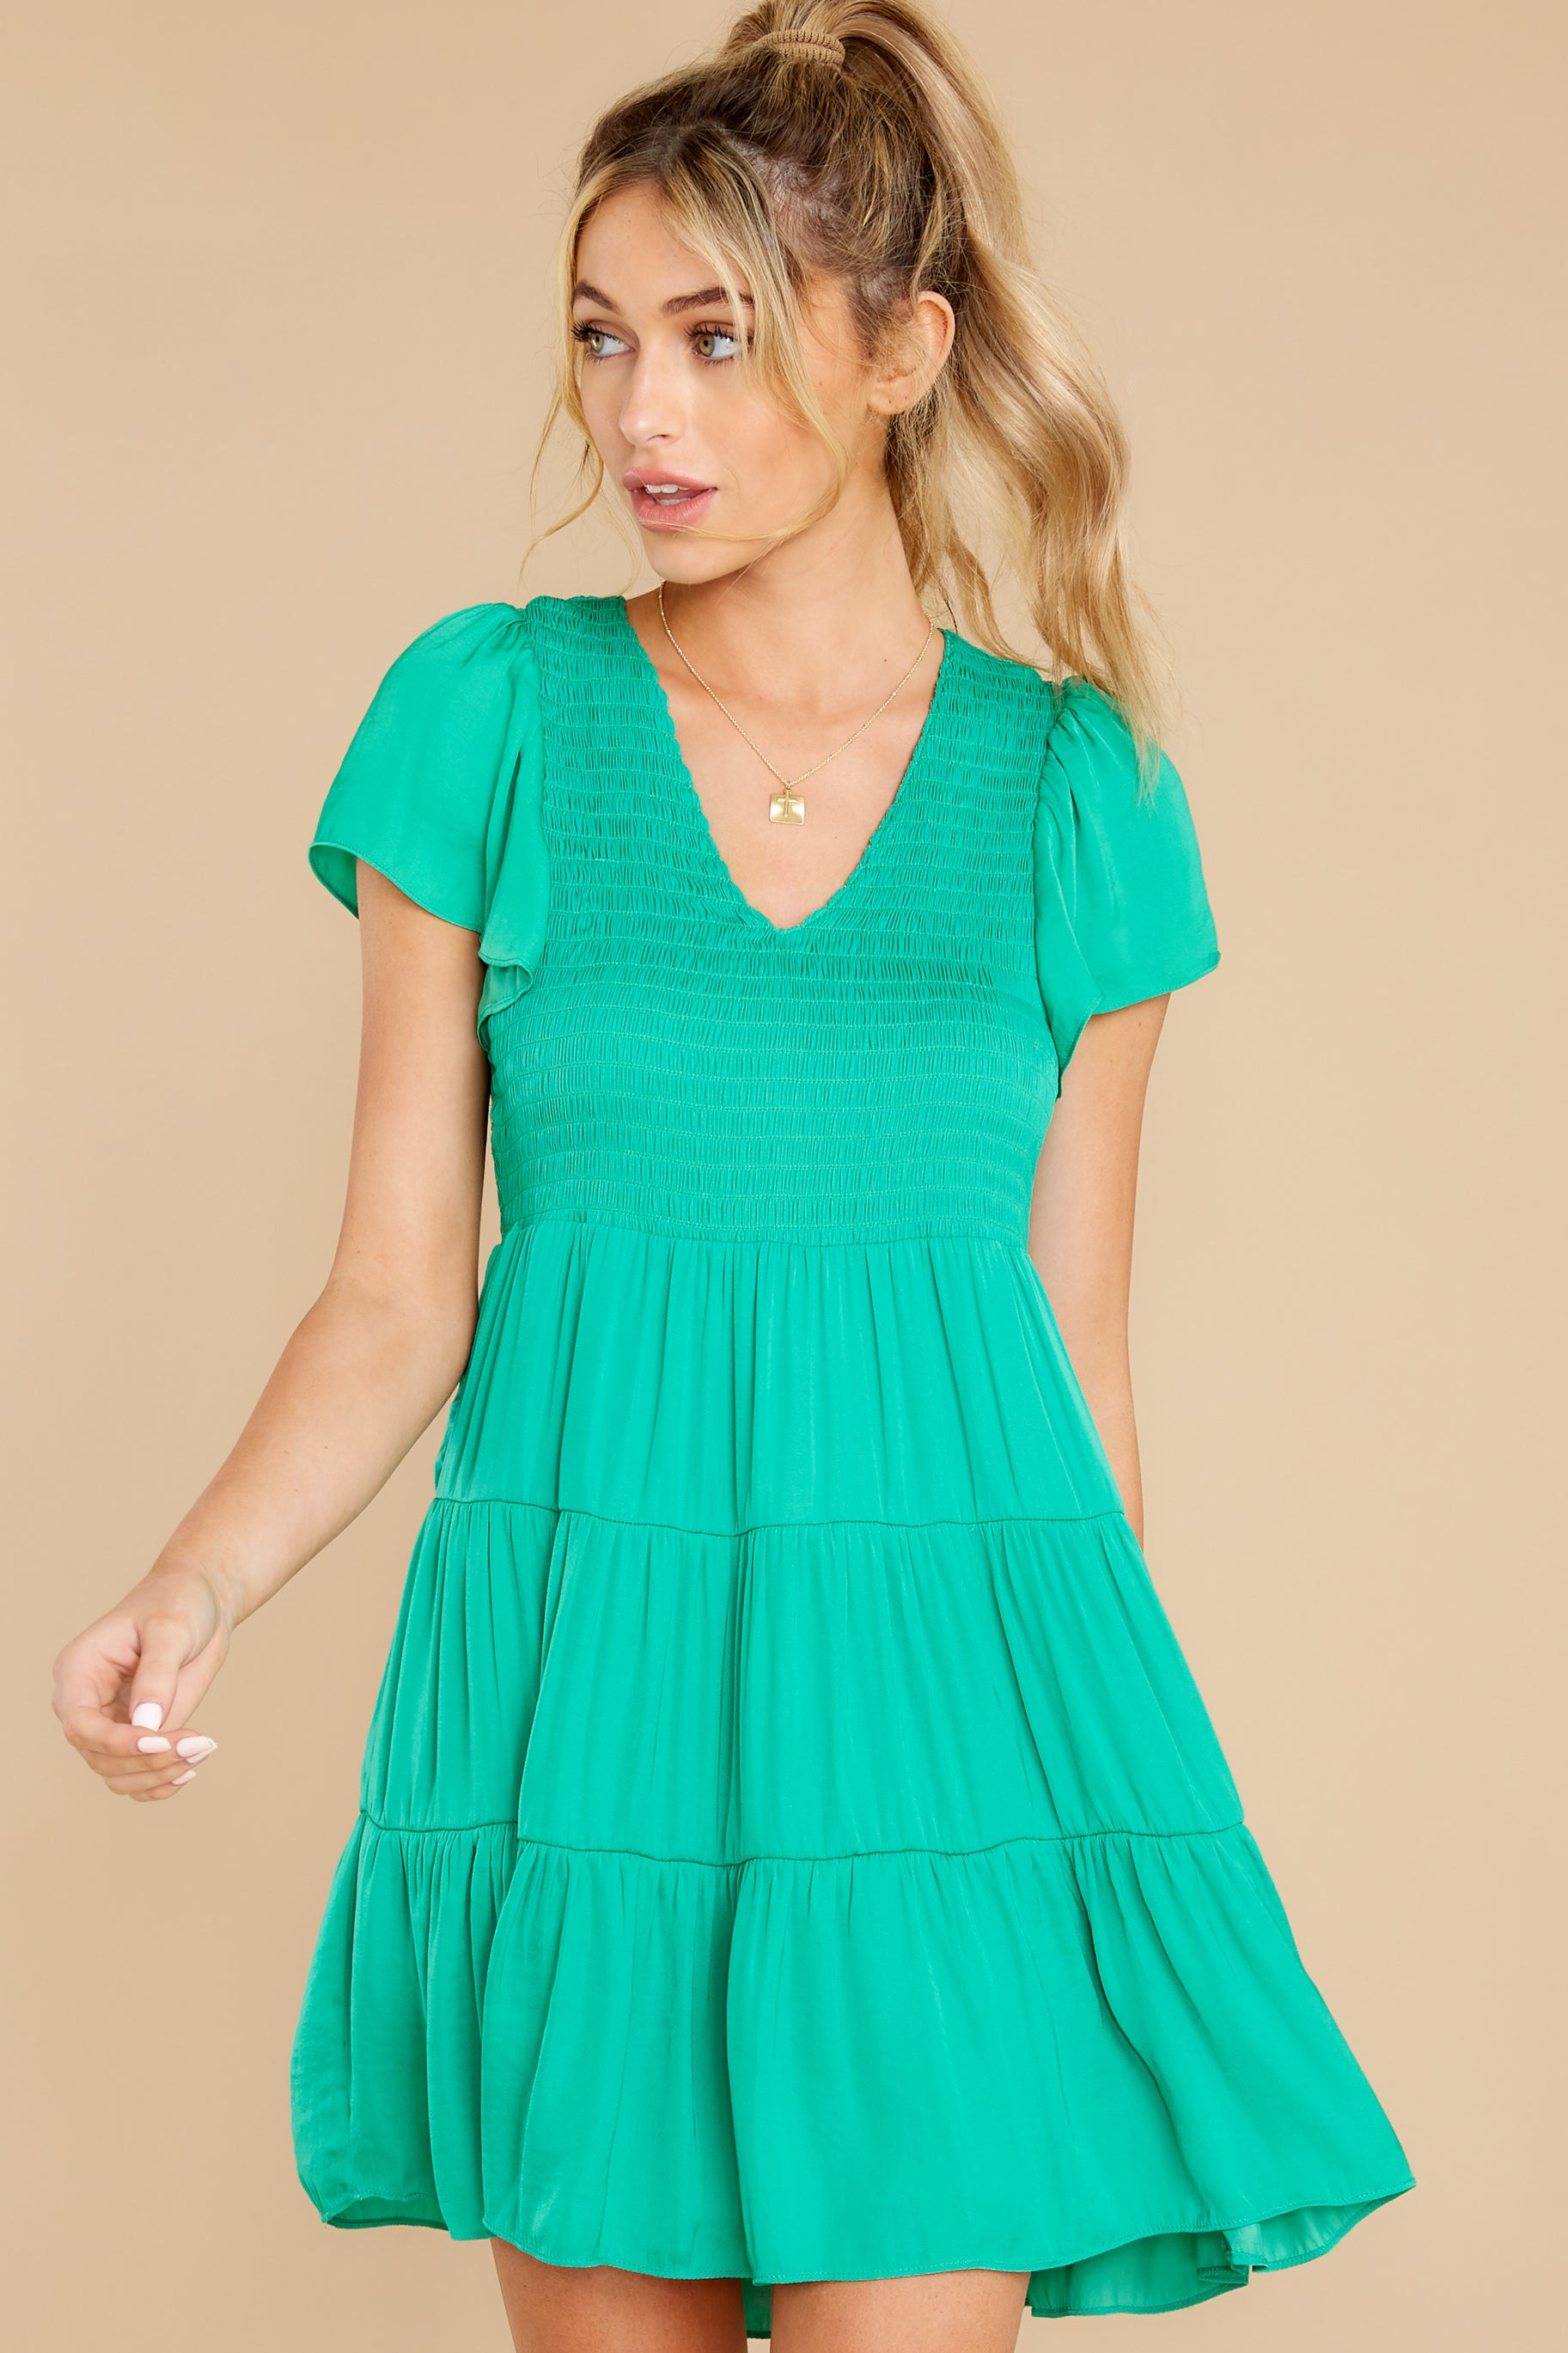 6 End Of The Night Jade Green Dress at reddress.com